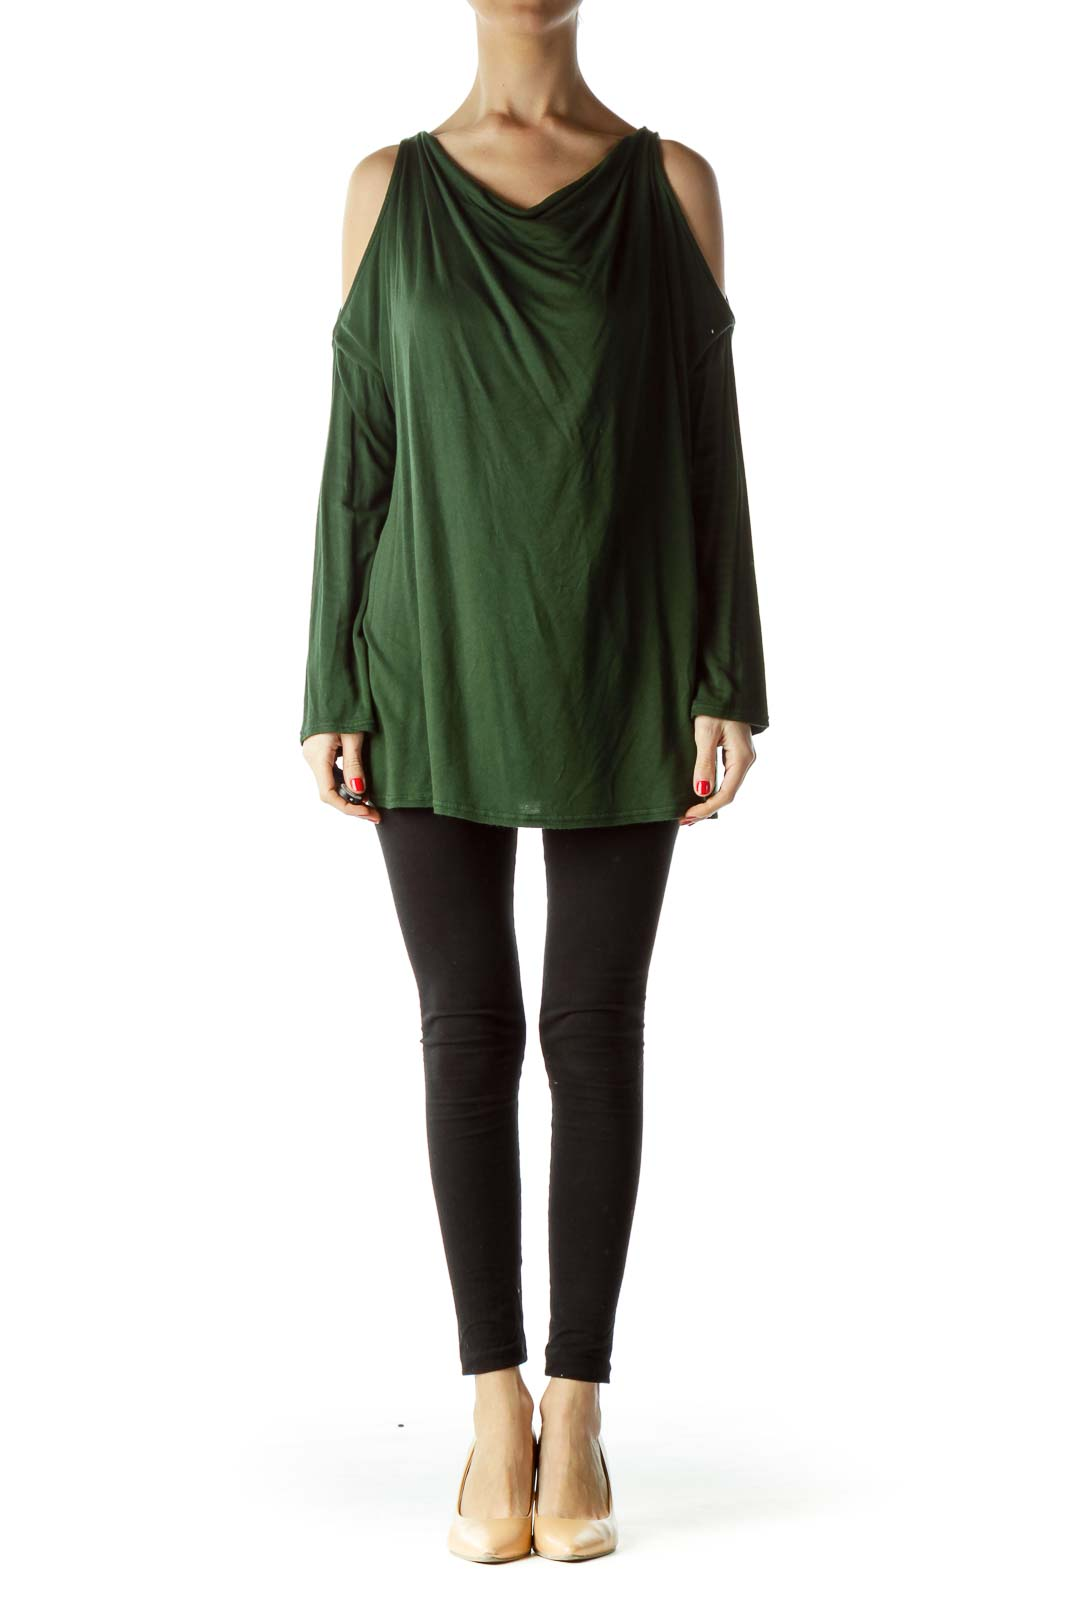 Green Cold Shoulder Long Sleeve Blouse